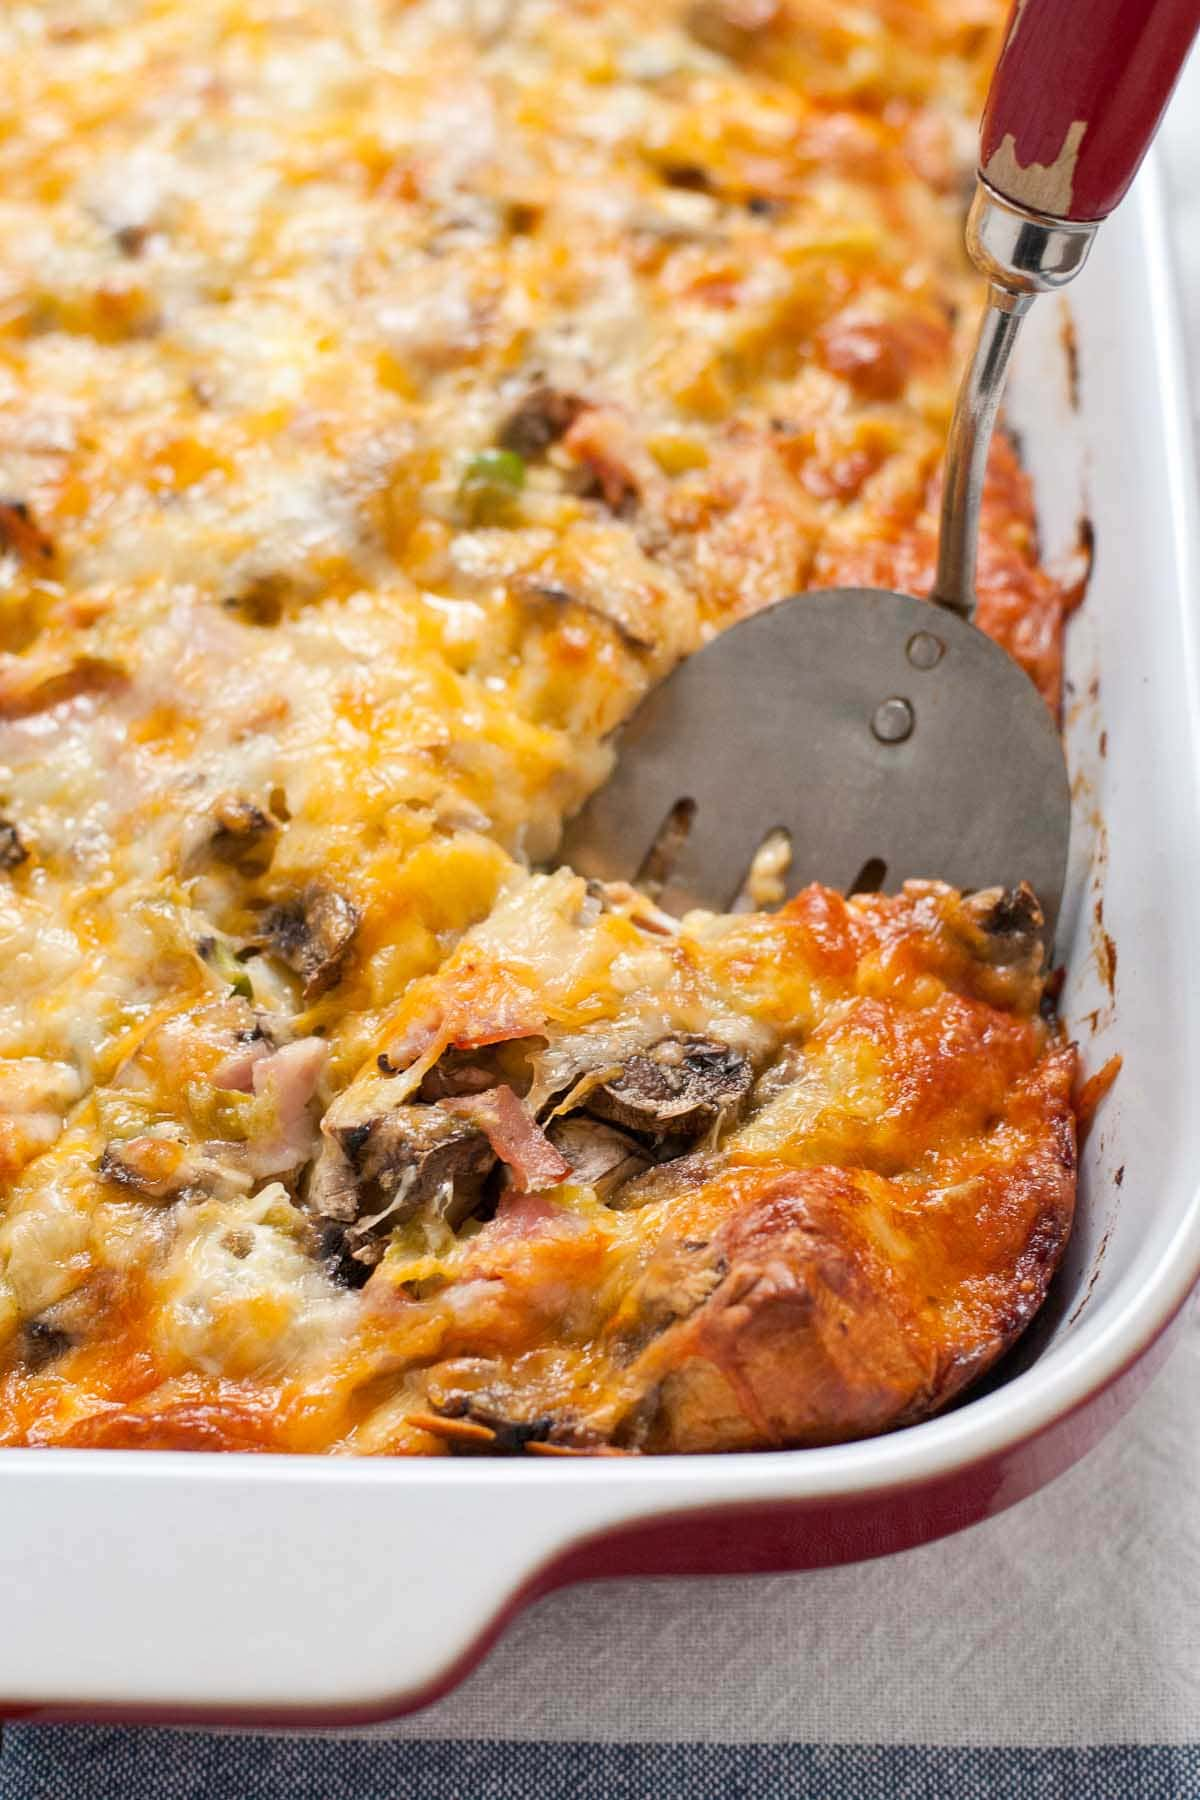 Bubble Up Ham and Cheese Biscuit Breakfast Casserole